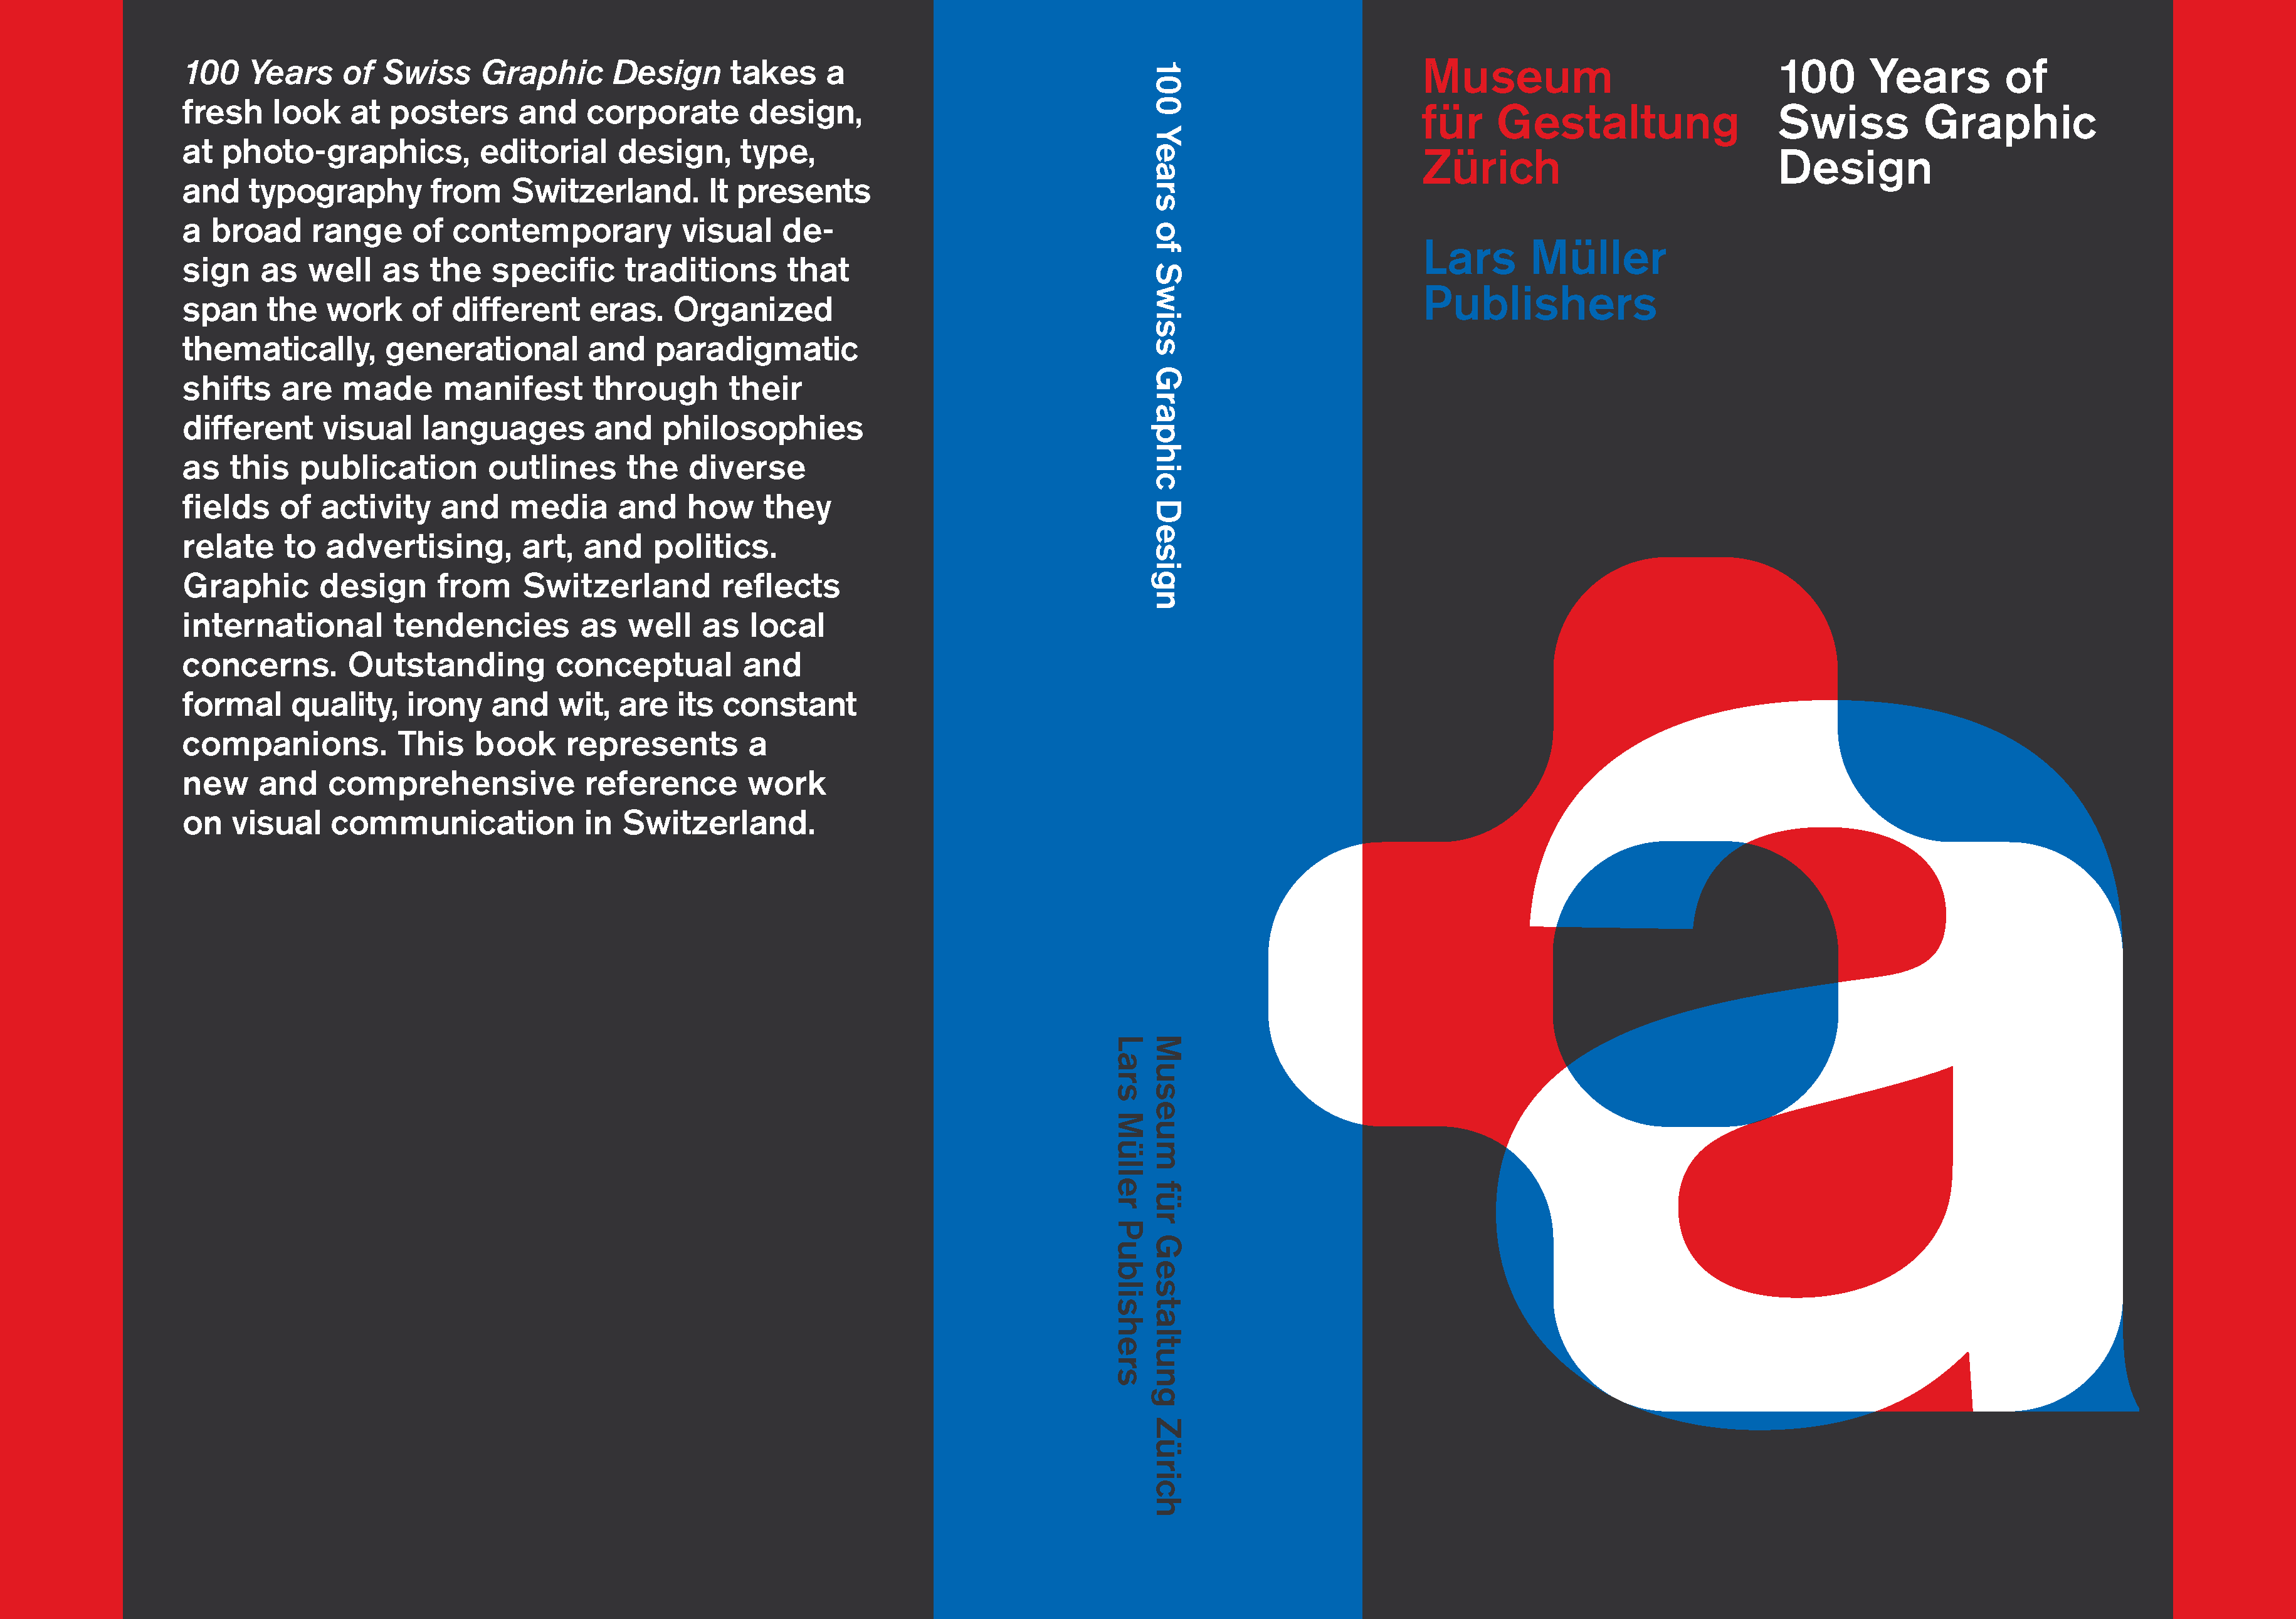 The Norm-designed 100 Years of Swiss Graphic Design, published by Lars Müller Publishers.